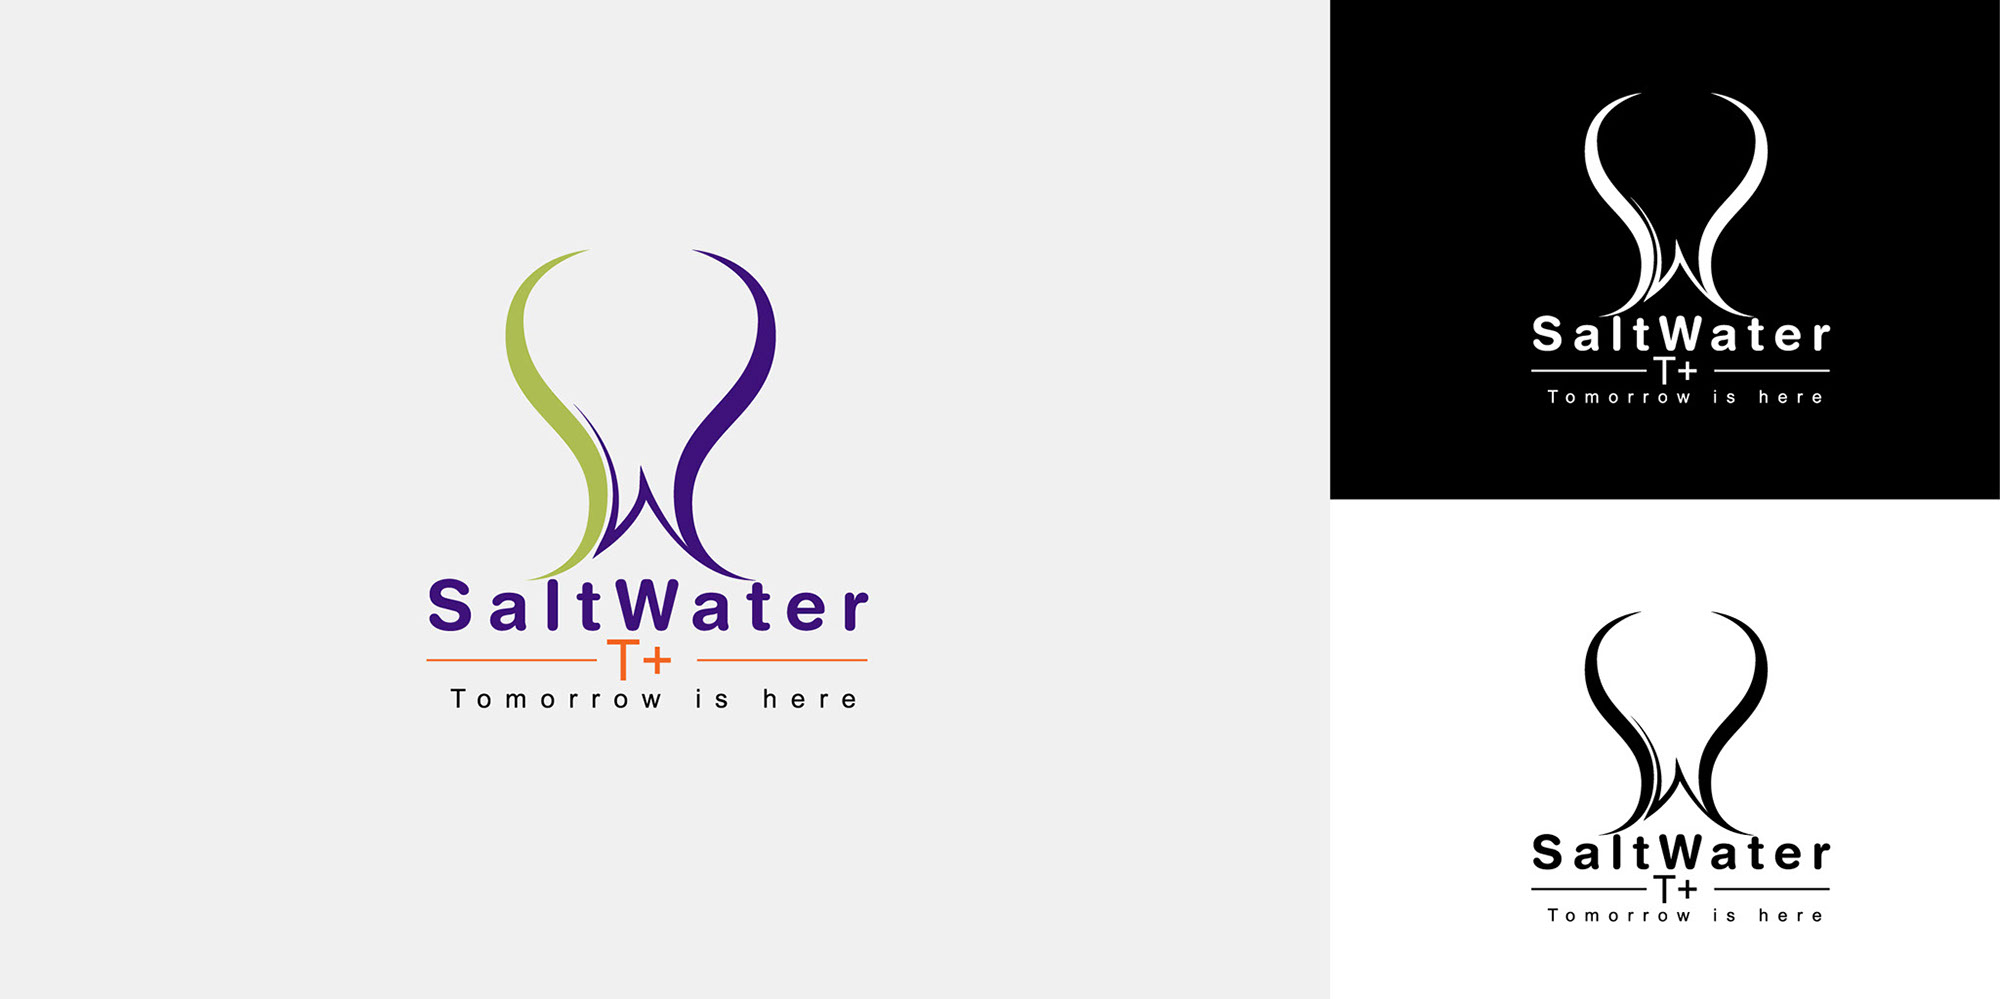 Saltwater logo by XENON Advertising